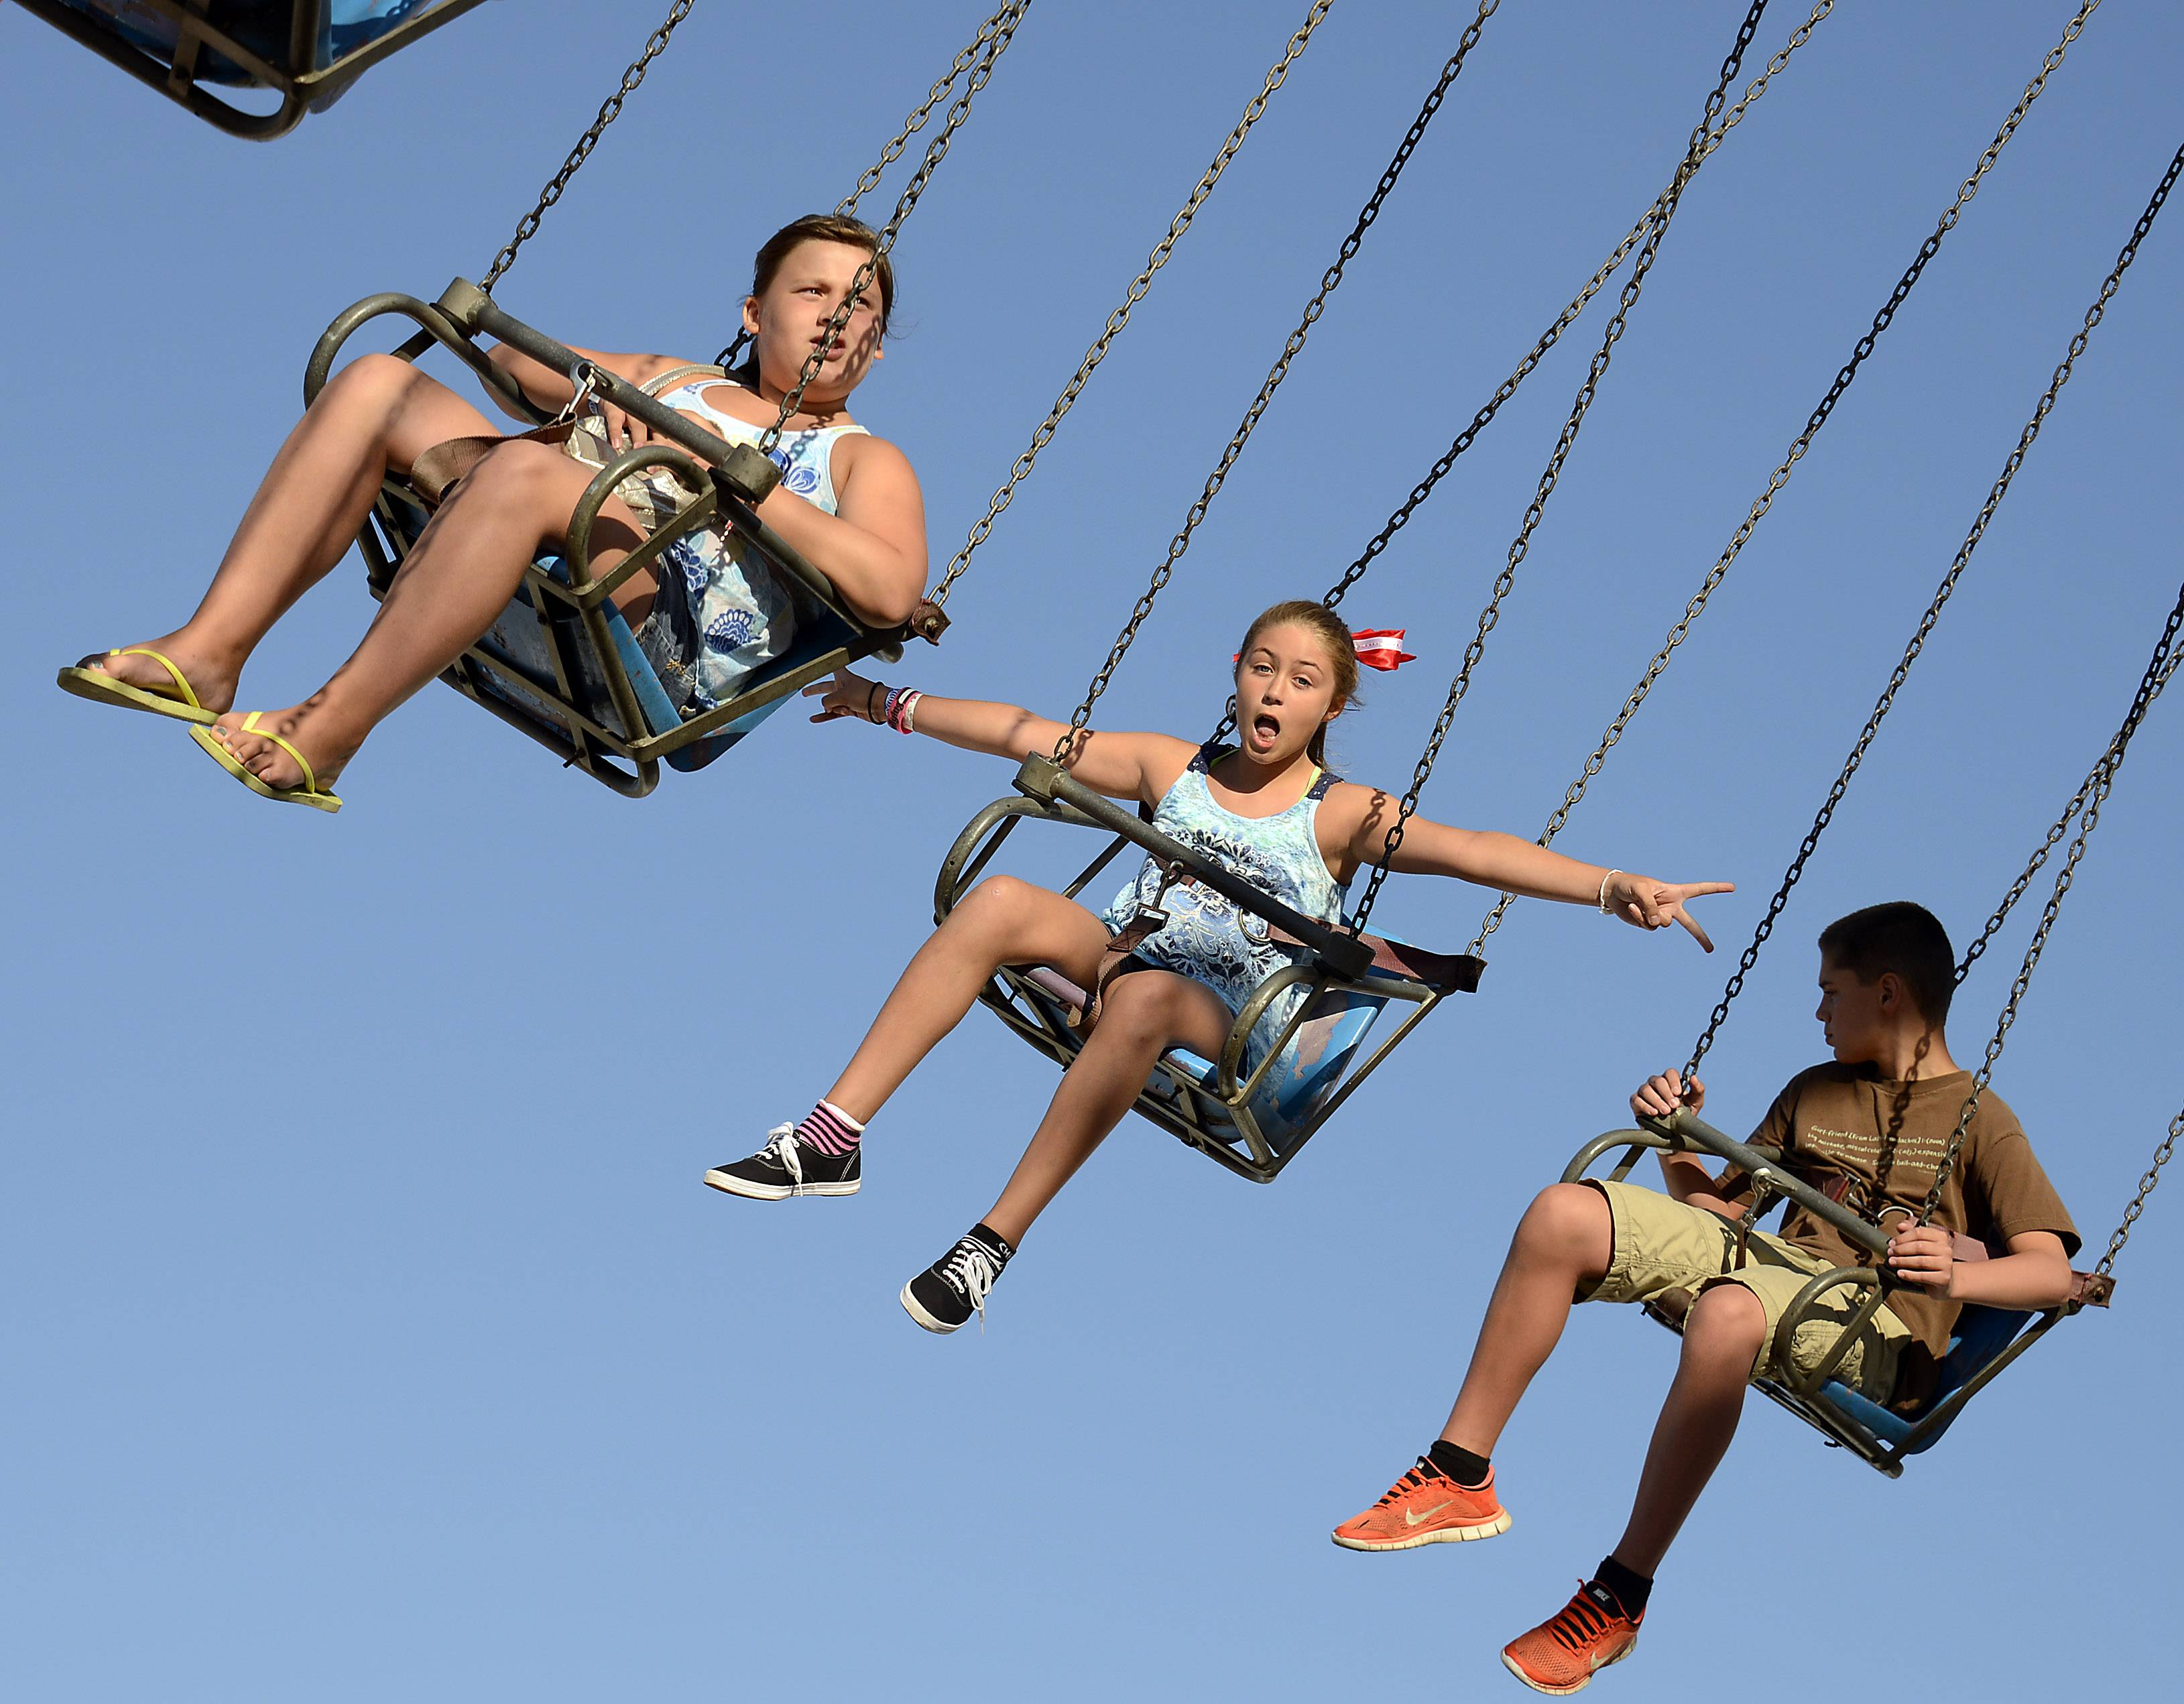 Lainey Sporrer, 10, of Hoffman Estates, middle, flies high on the Yo Yo with her friends at the Northwest Fourth Fest in Hoffman Estates on Thursday.